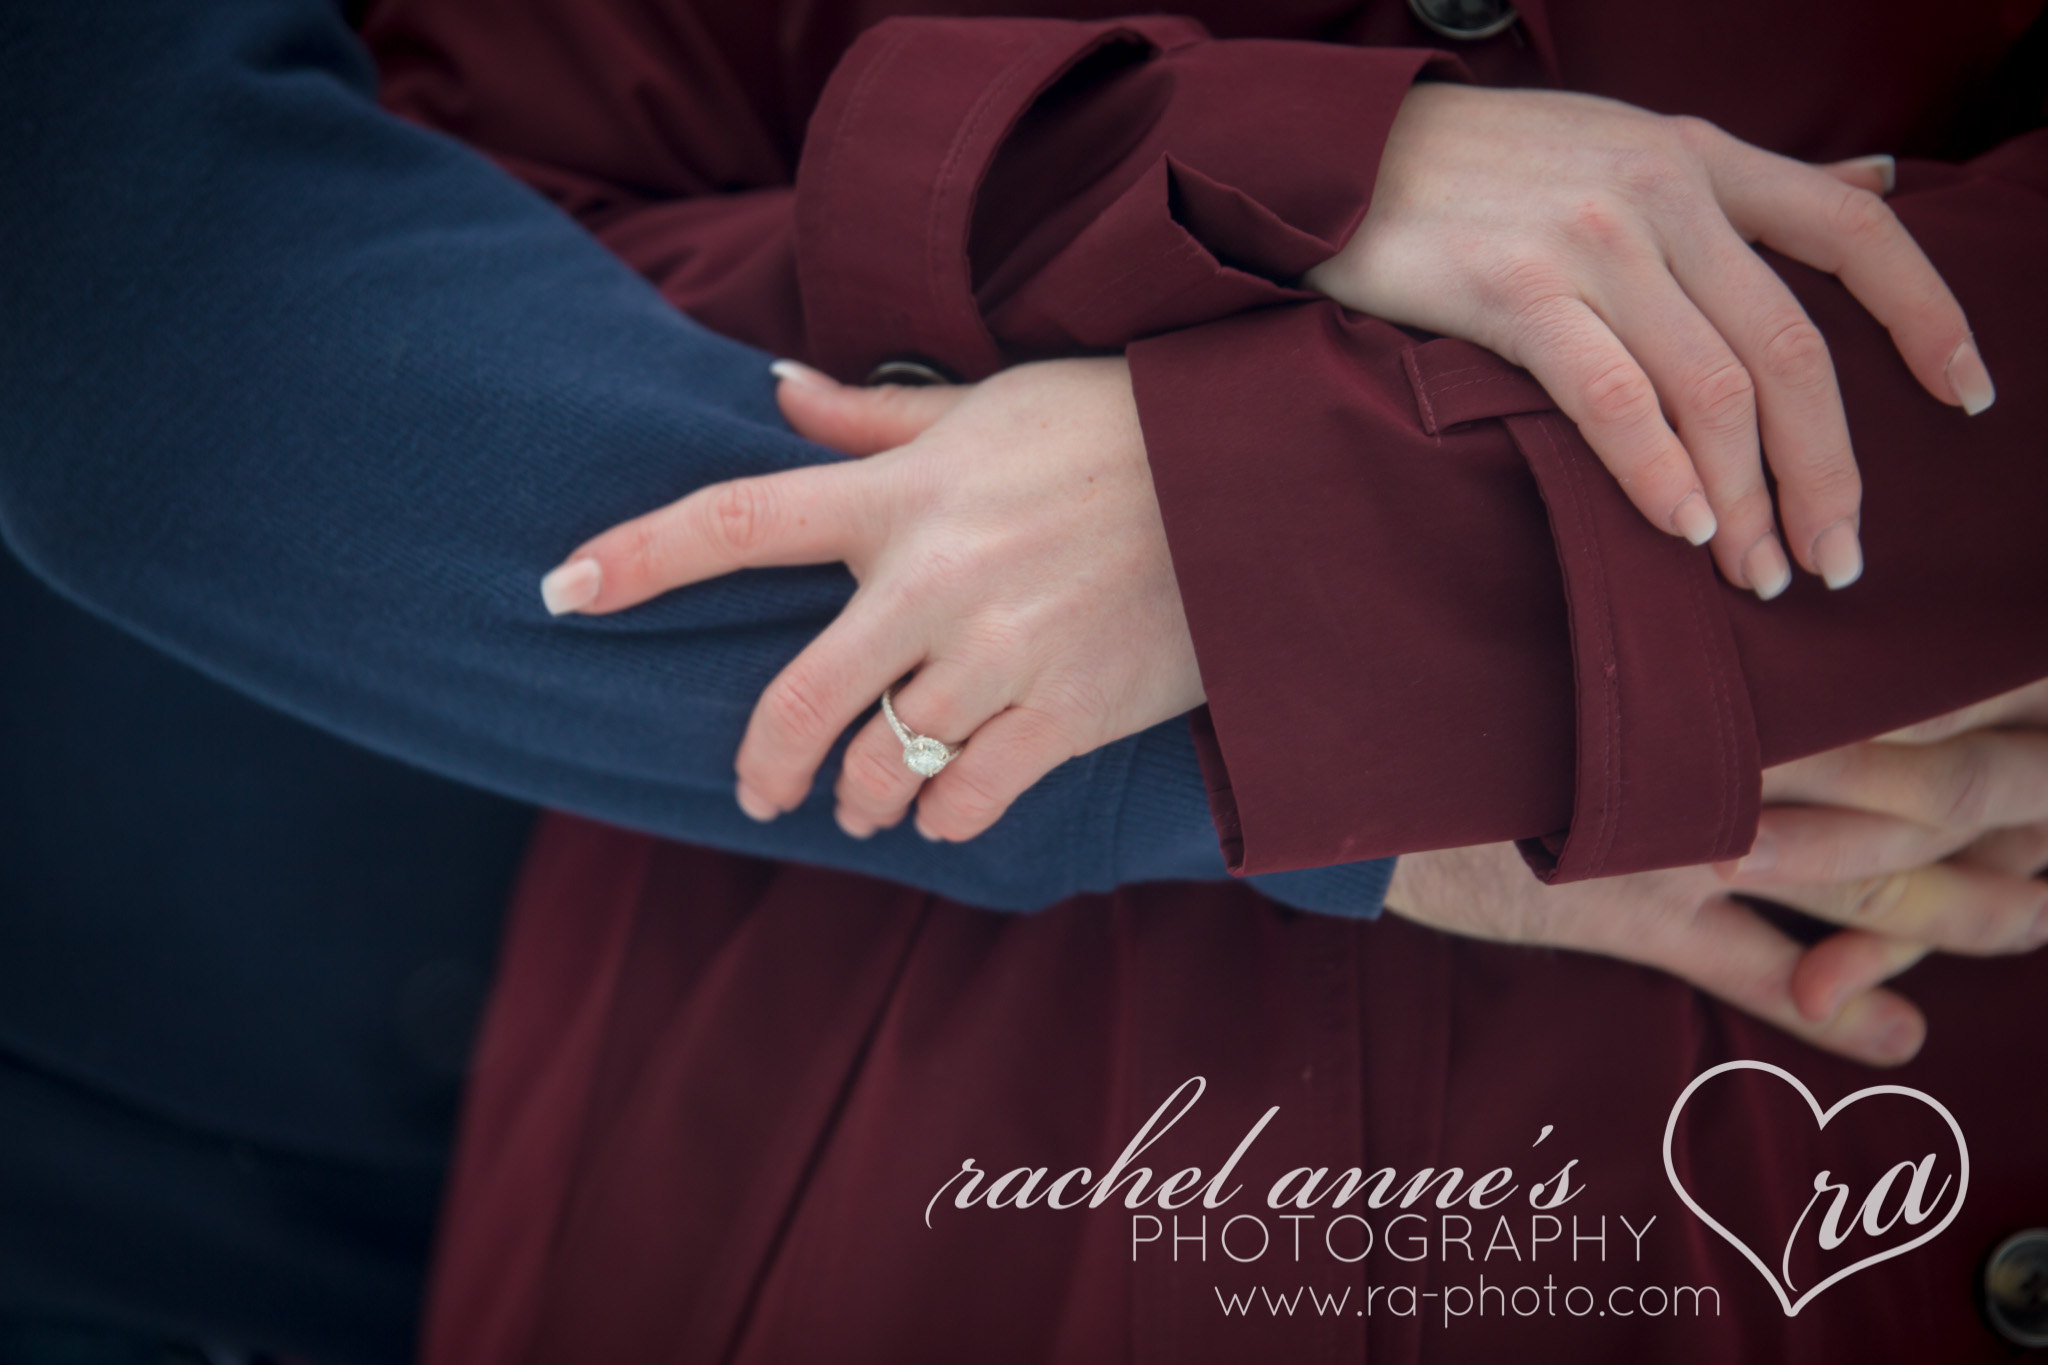 009-JKM-DUBOIS-PA-ENGAGEMENT-PHOTOGRAPHY.jpg